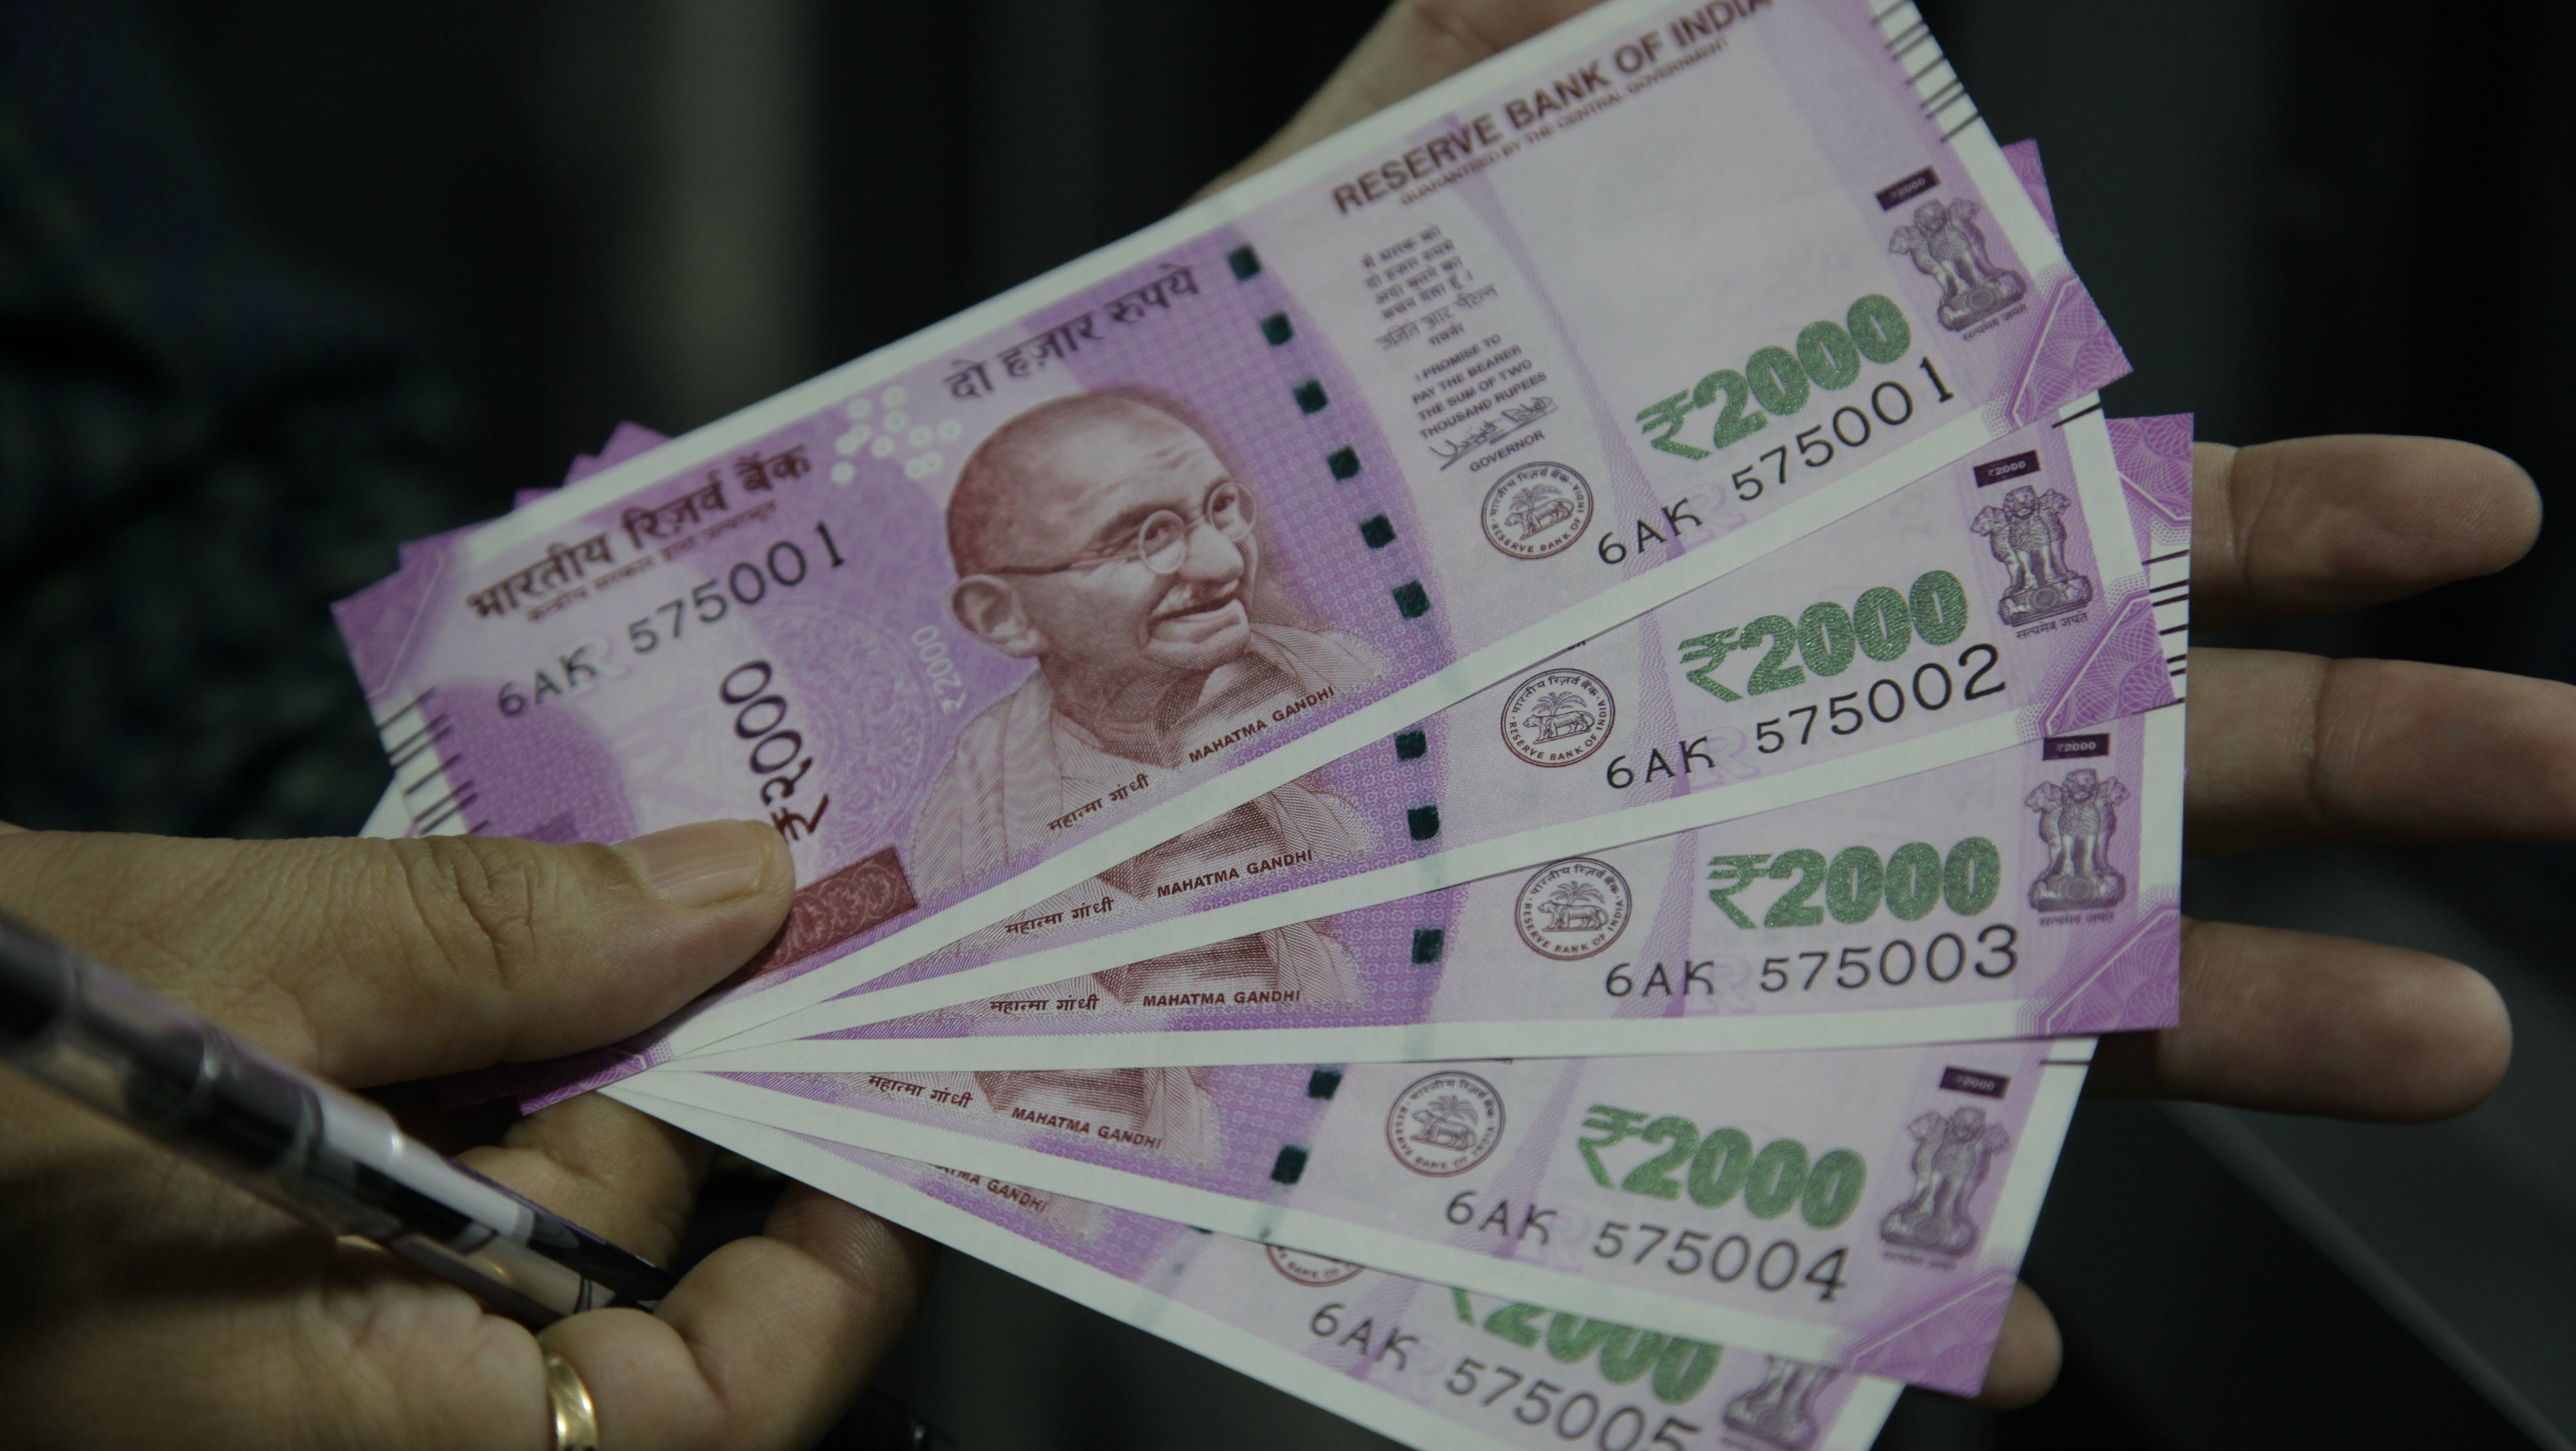 An Indian shows new rupees 2000 currency he received after exchanging discontinued currency notes in Jammu, India, Sunday, Nov. 13, 2016. Chaotic scenes played out across India over the weekend, with long lines growing even longer and scuffles breaking out, as millions of anxious people tried to change old currency notes that became worthless days earlier when the government demonetized high-value bills.